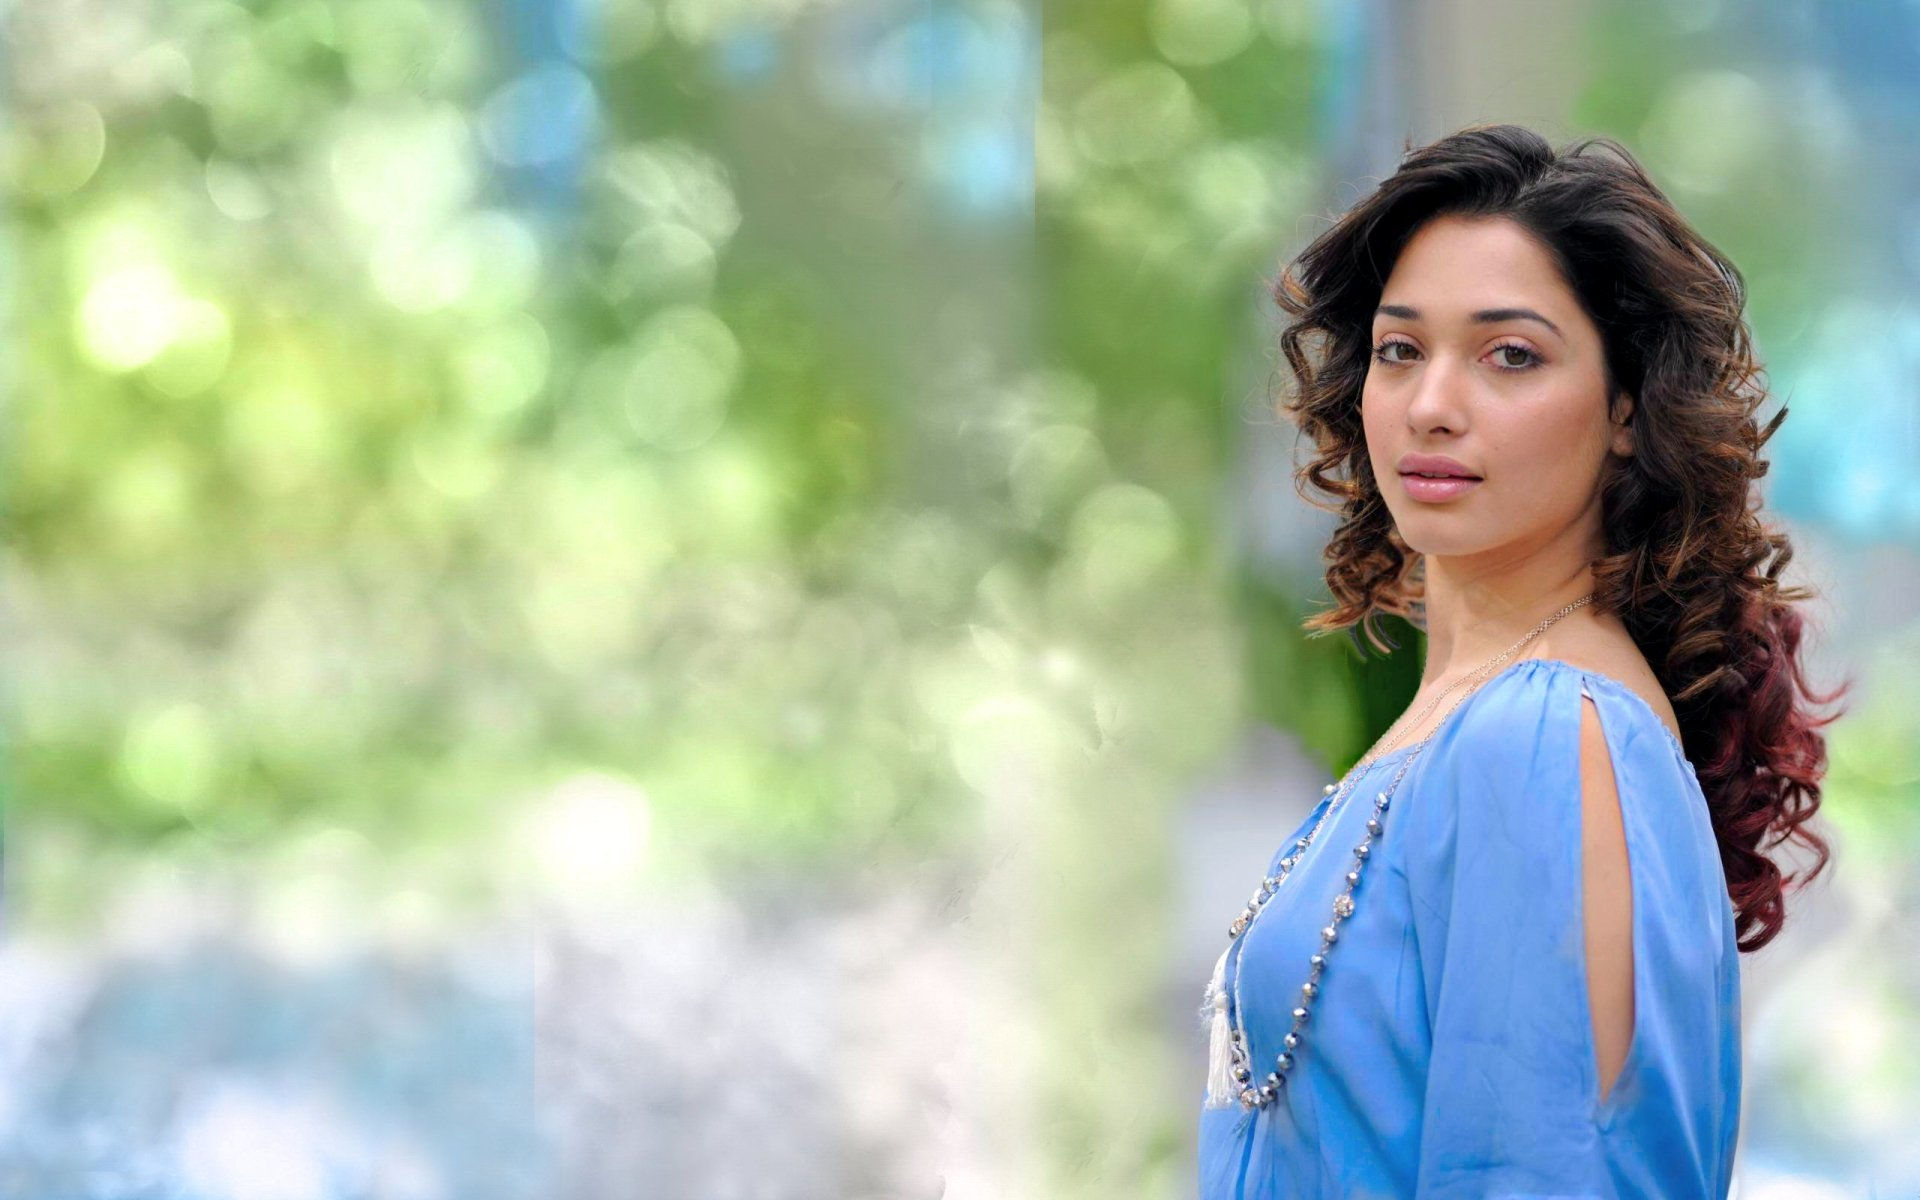 Beautiful Tamannaah Bhatia Photo Wallpaper